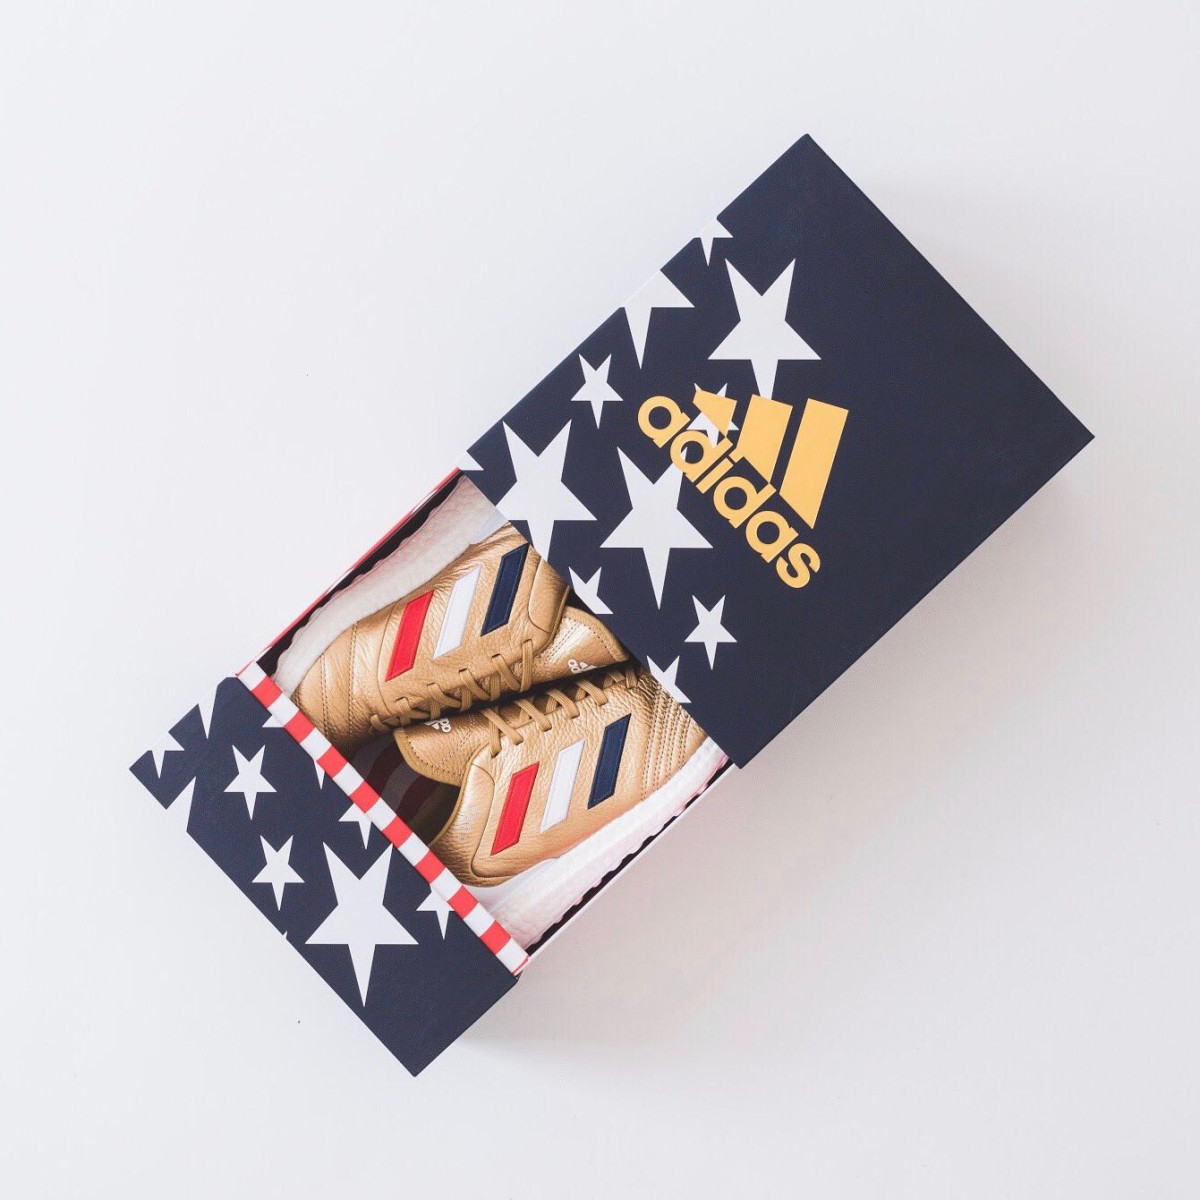 ronnie-fieg-usa-adidas-soccer-collaboration-teaser-02